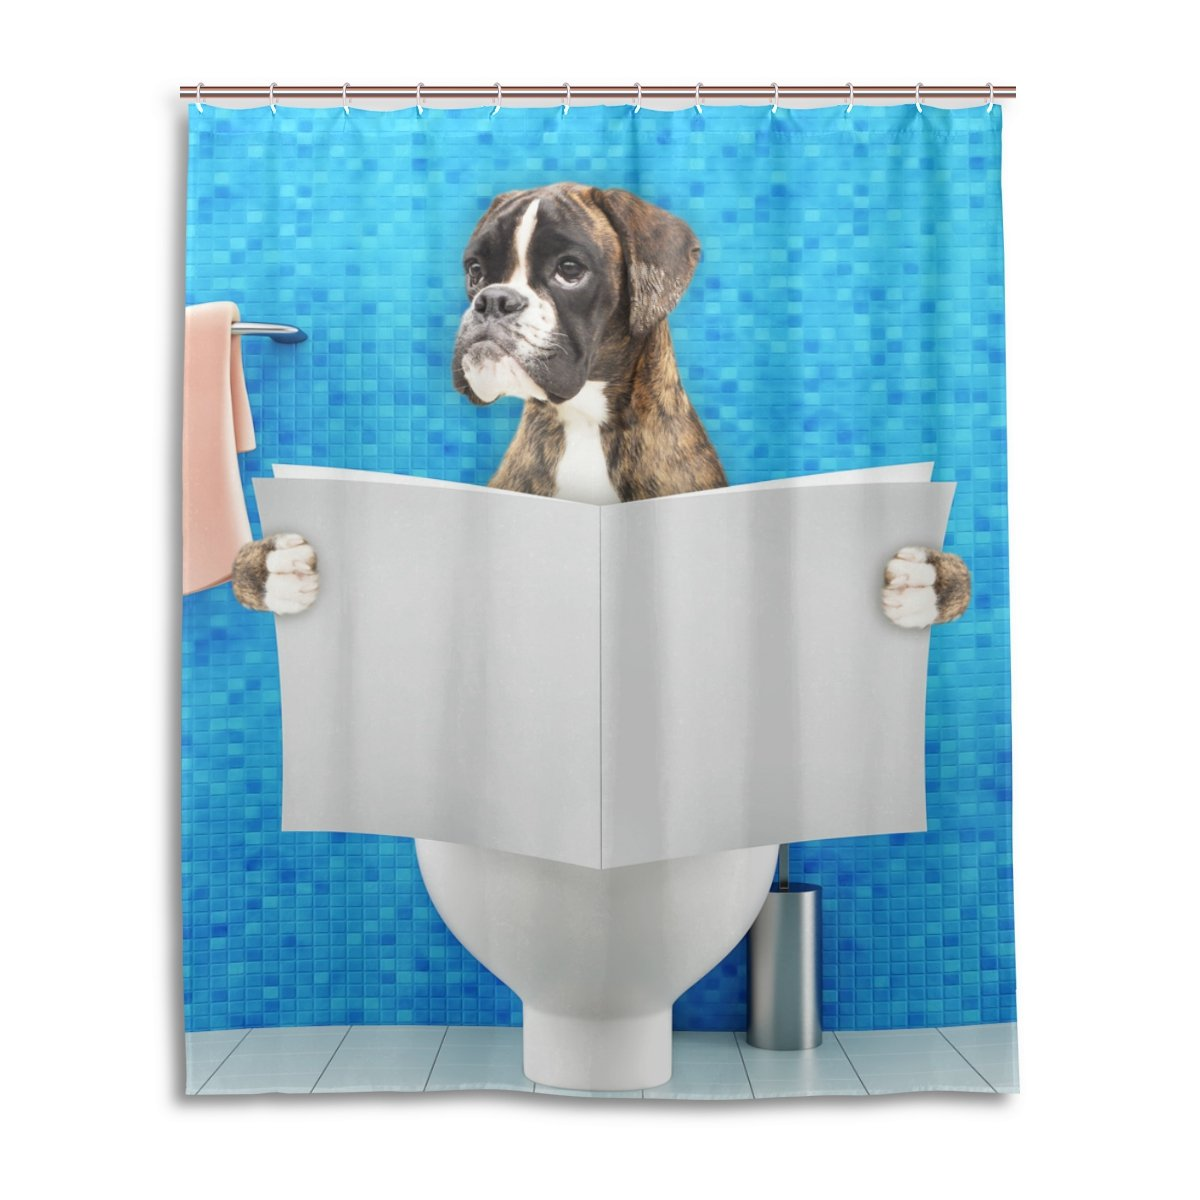 Chen Miranda Waterproof Shower Curtain Everday Use Boxer Dog Bathroom Set Polyester Fabric Hooks